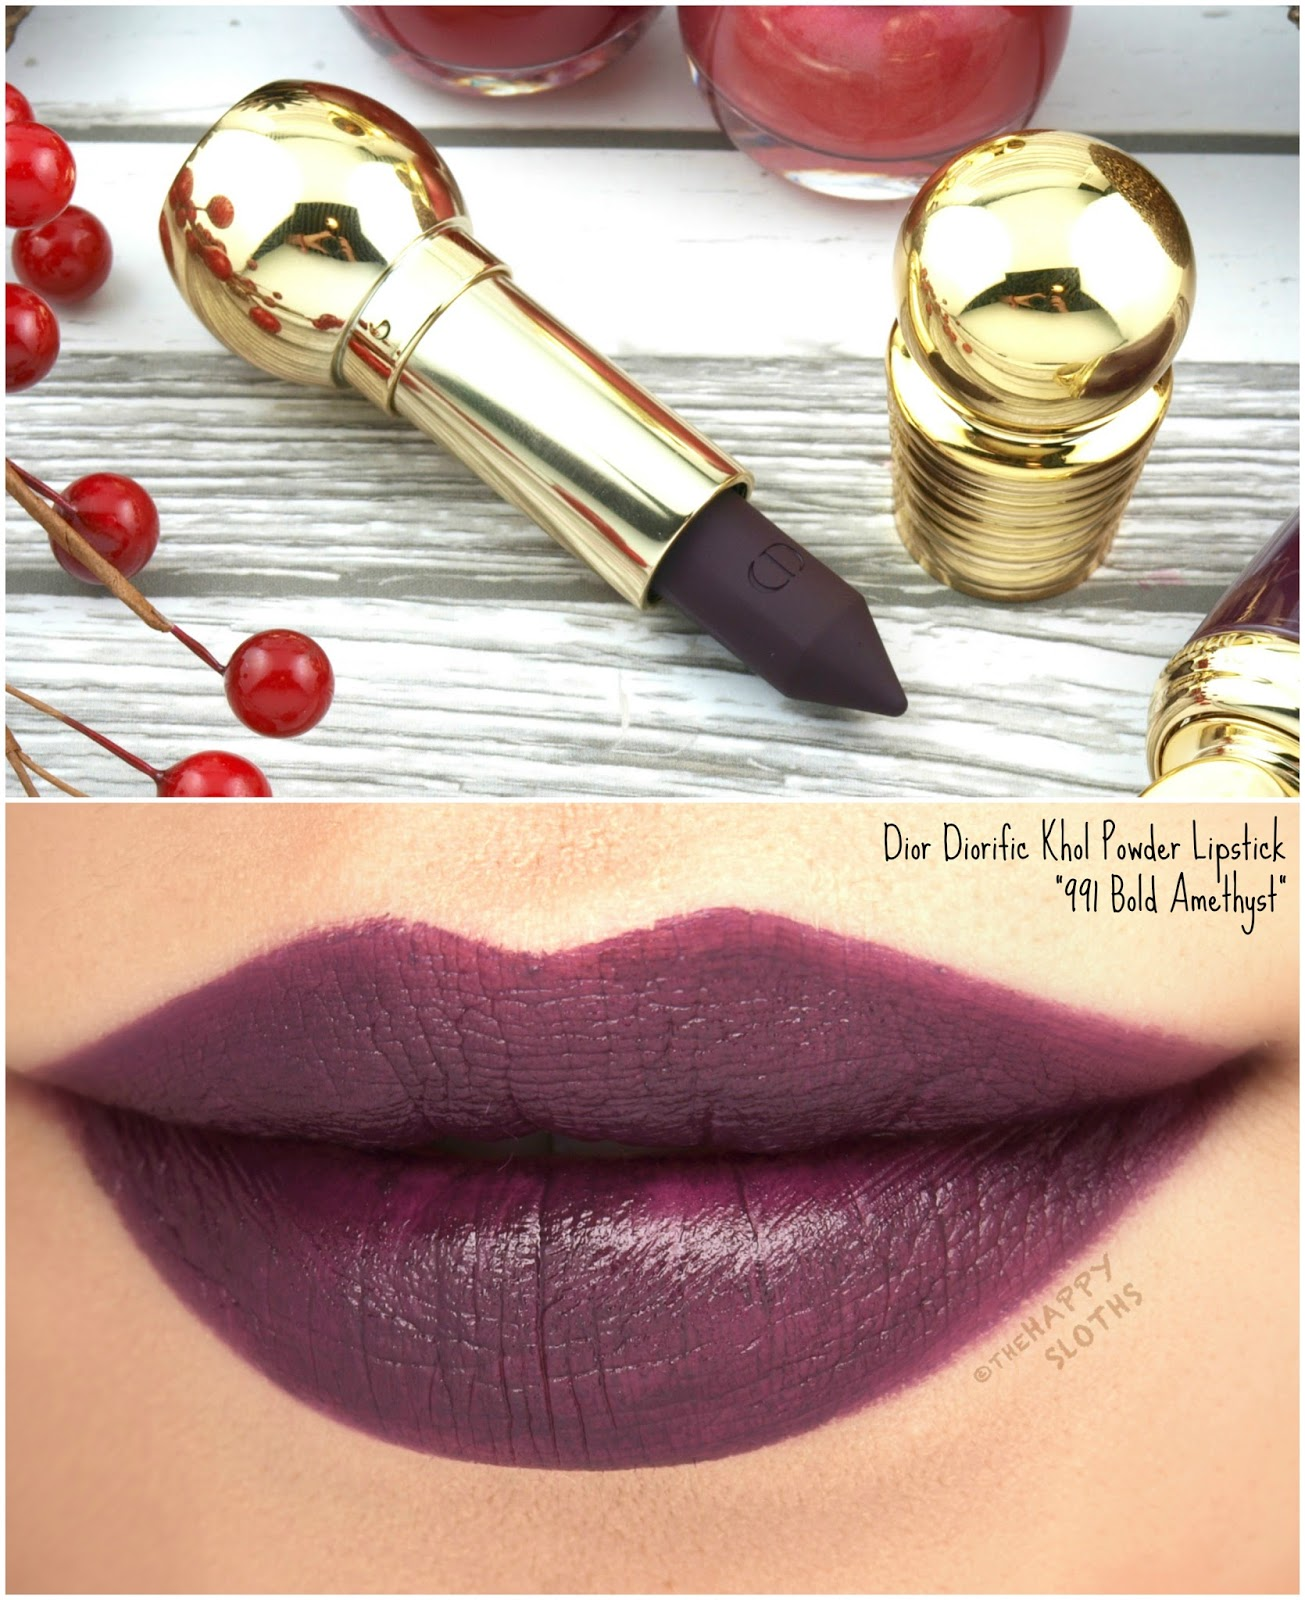 "Dior Holiday 2017 | Diorific Khol Powder Lipstick in ""991 Bold Amethyst"": Review and Swatches"